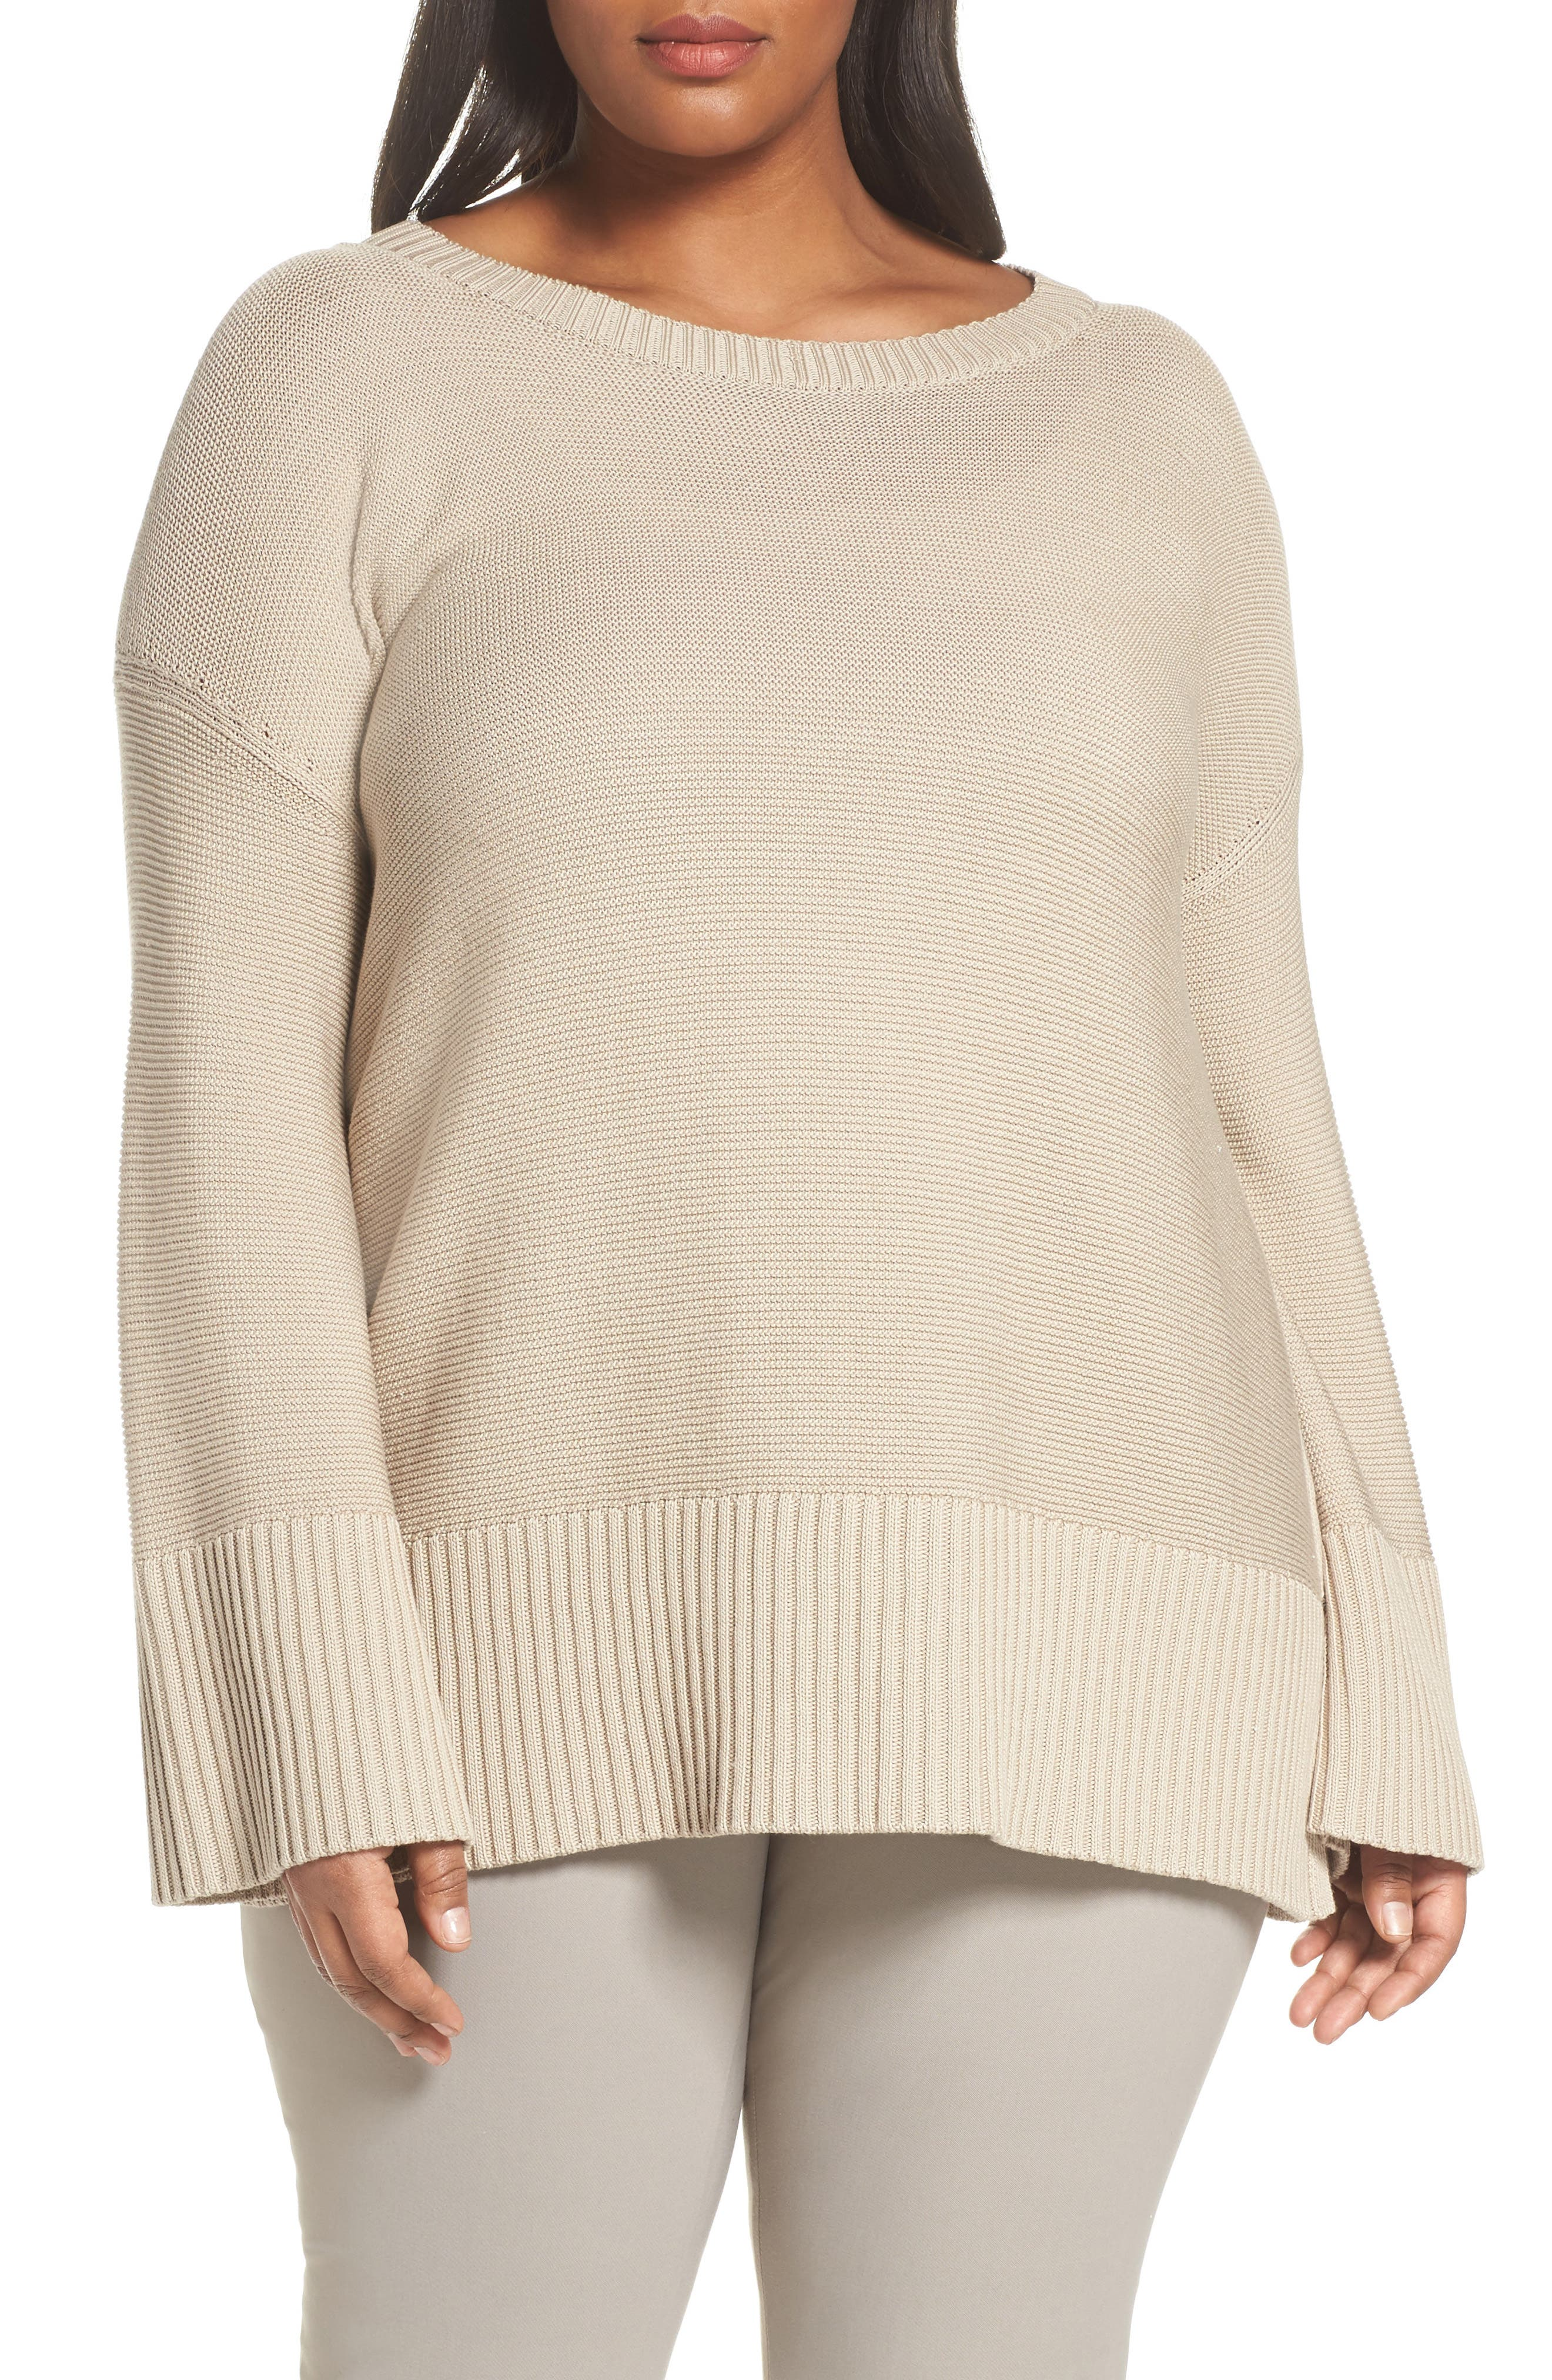 Lafayette 148 Silk and Cotton Sweater,                             Main thumbnail 1, color,                             Khaki